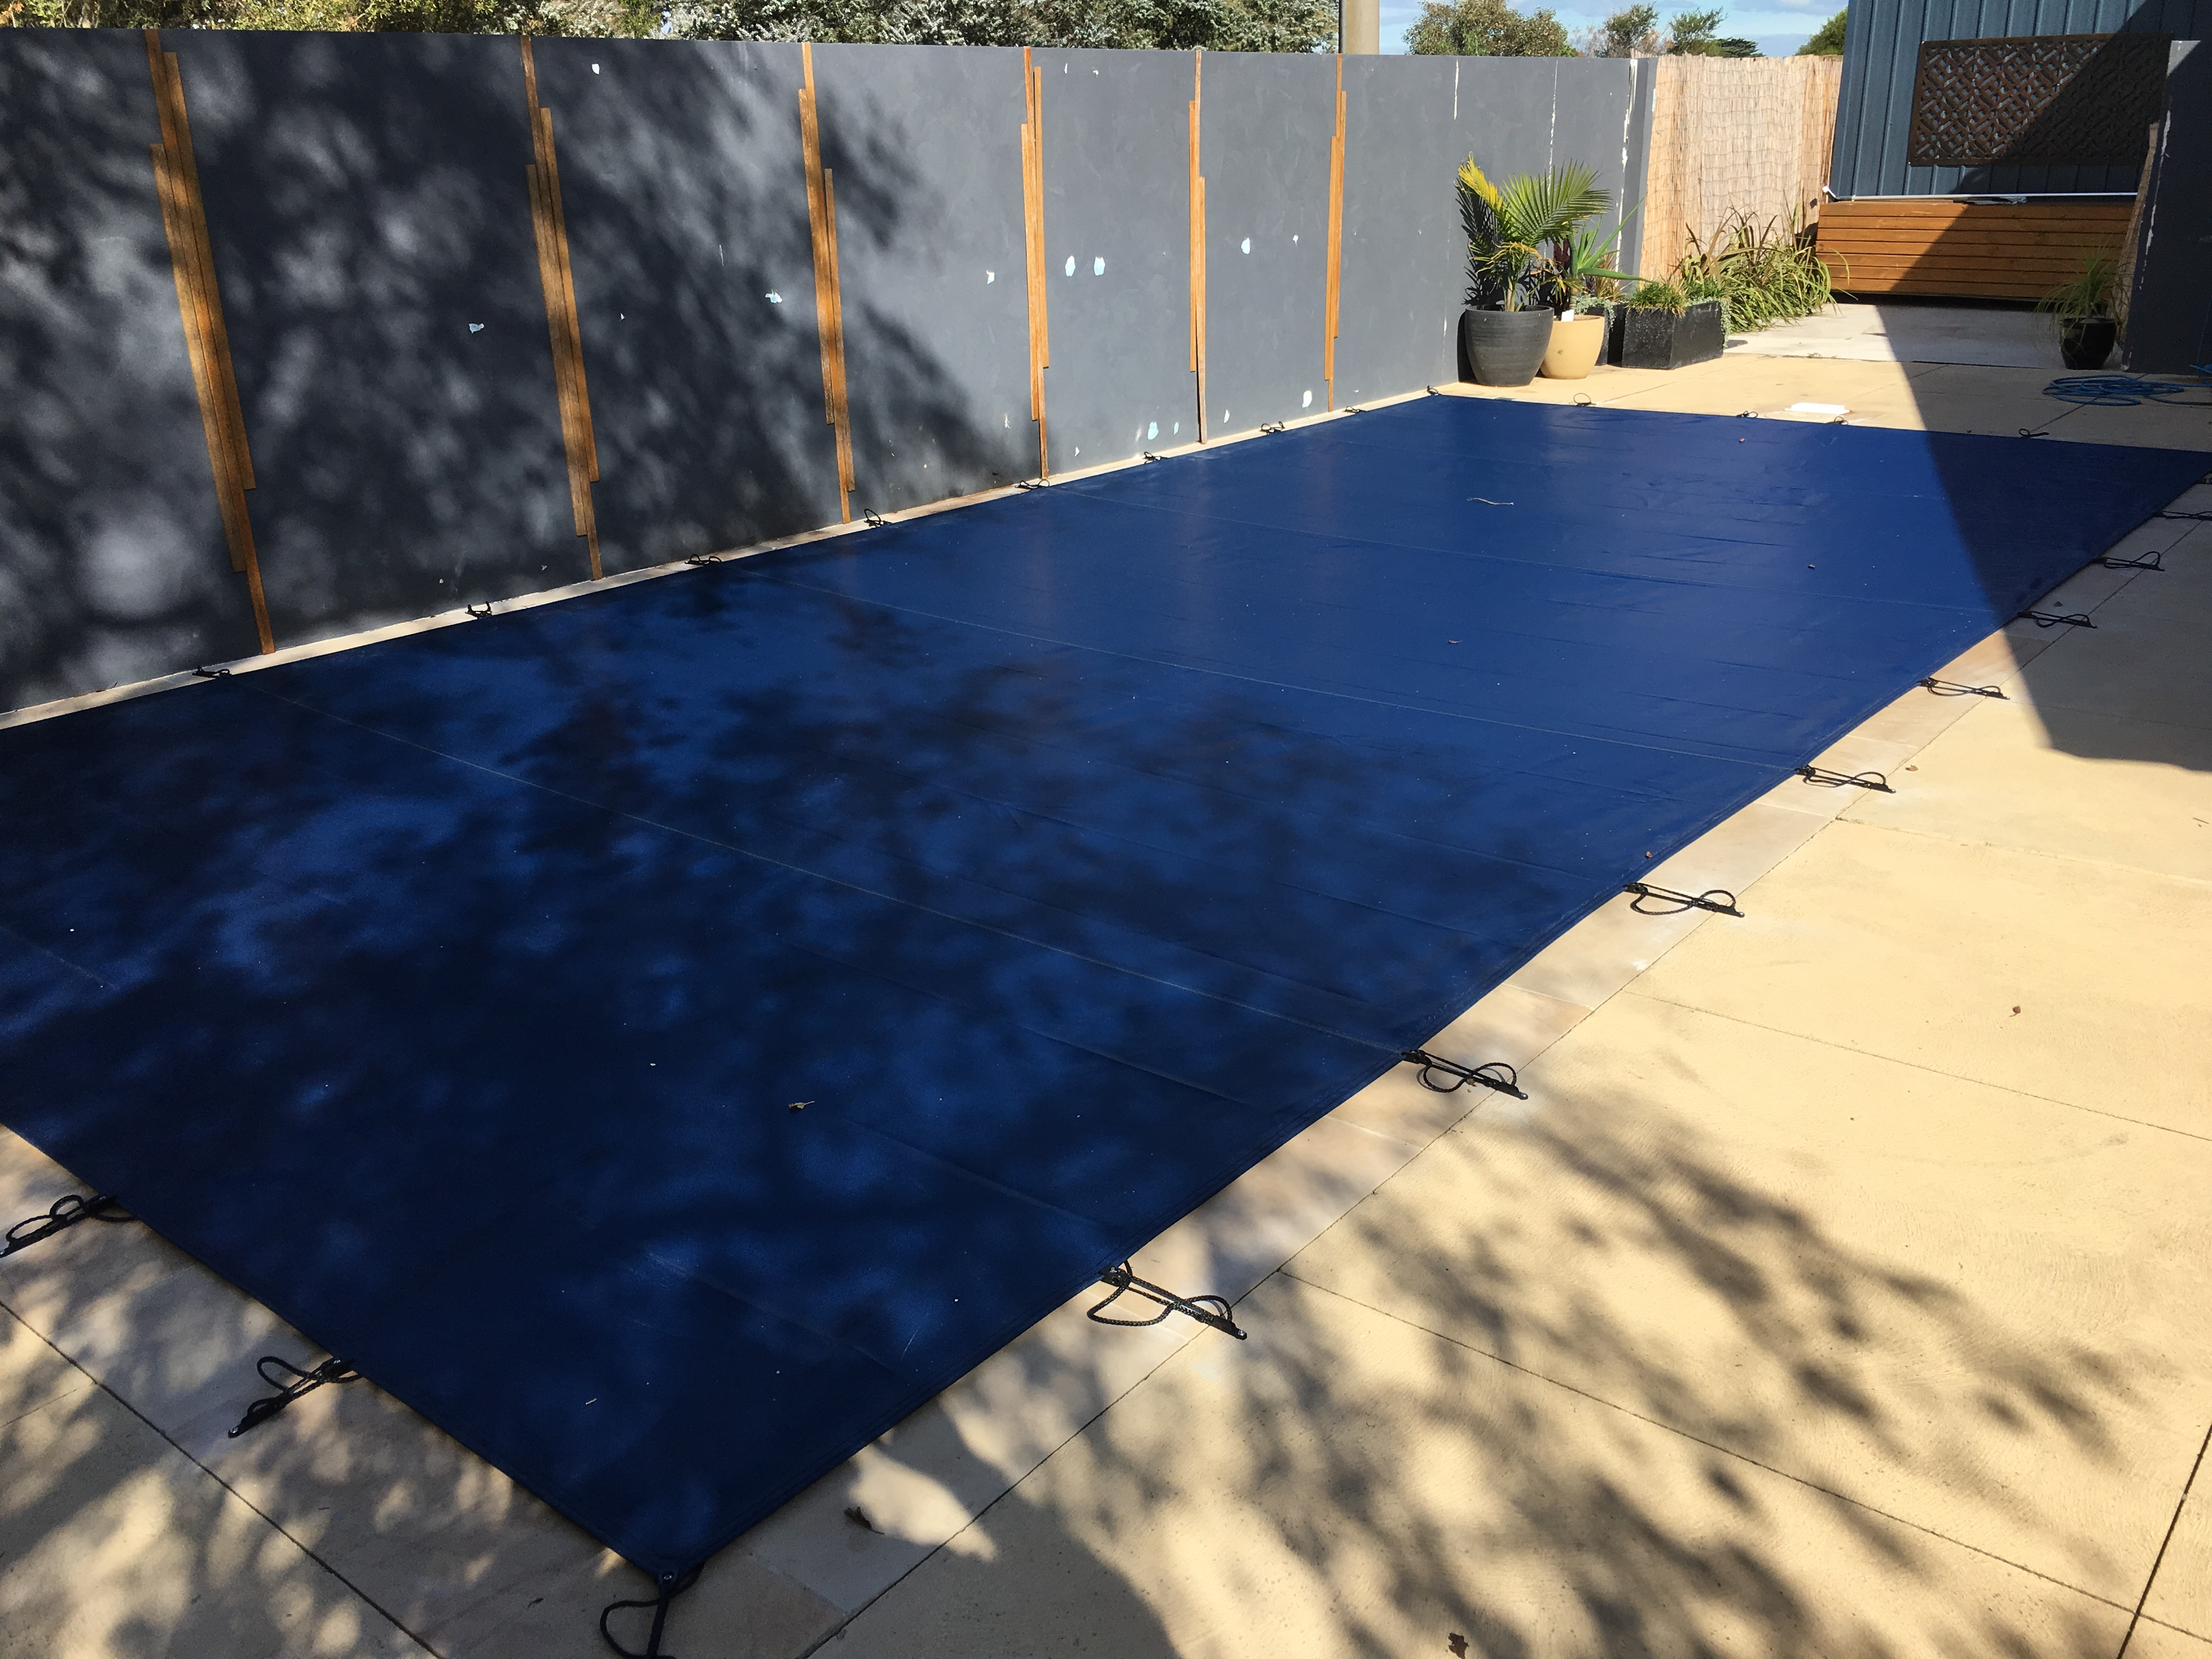 Another closure aqua pool covers melbourne australia for Swimming pool covers melbourne